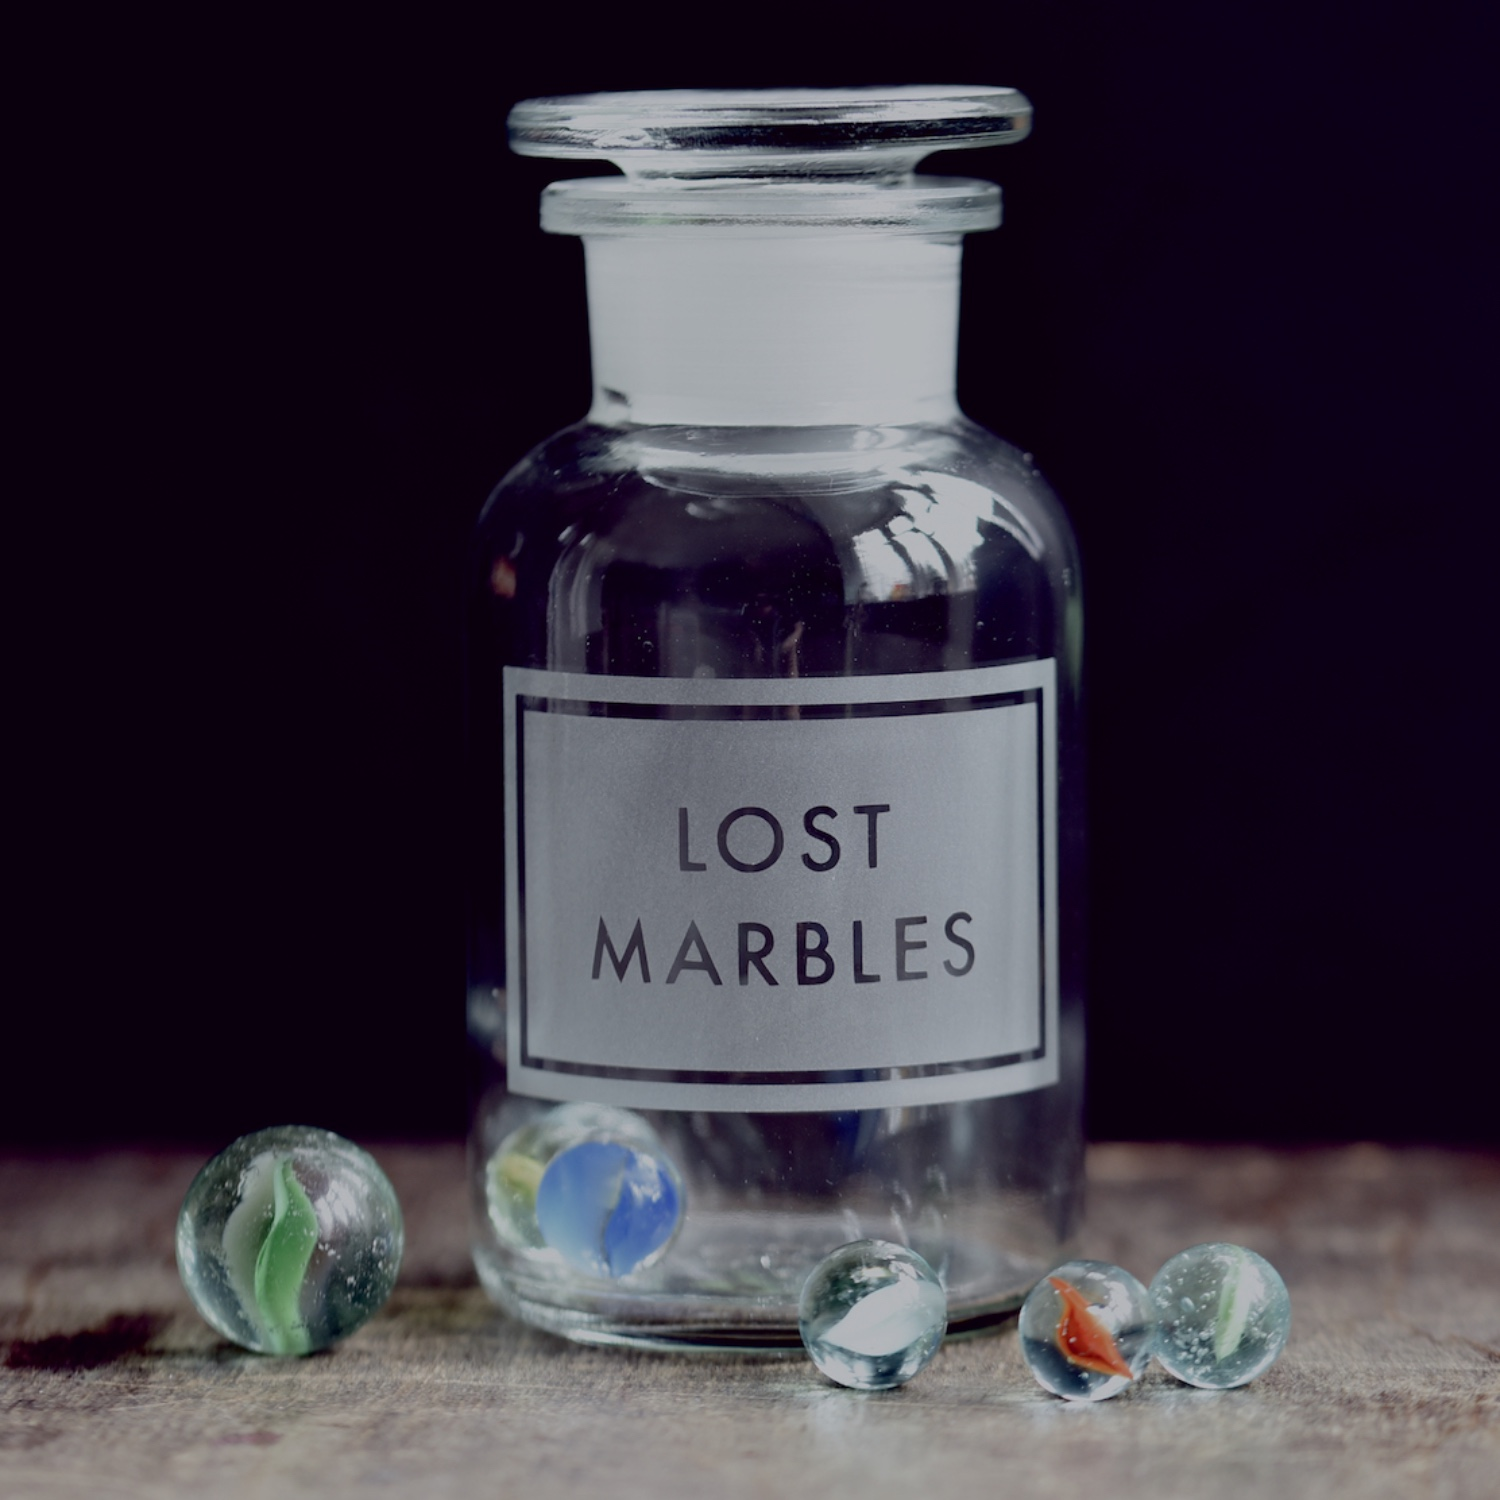 lost-marbles-etched-apothecary-jar-vinegar-and-brown-paper.jpg